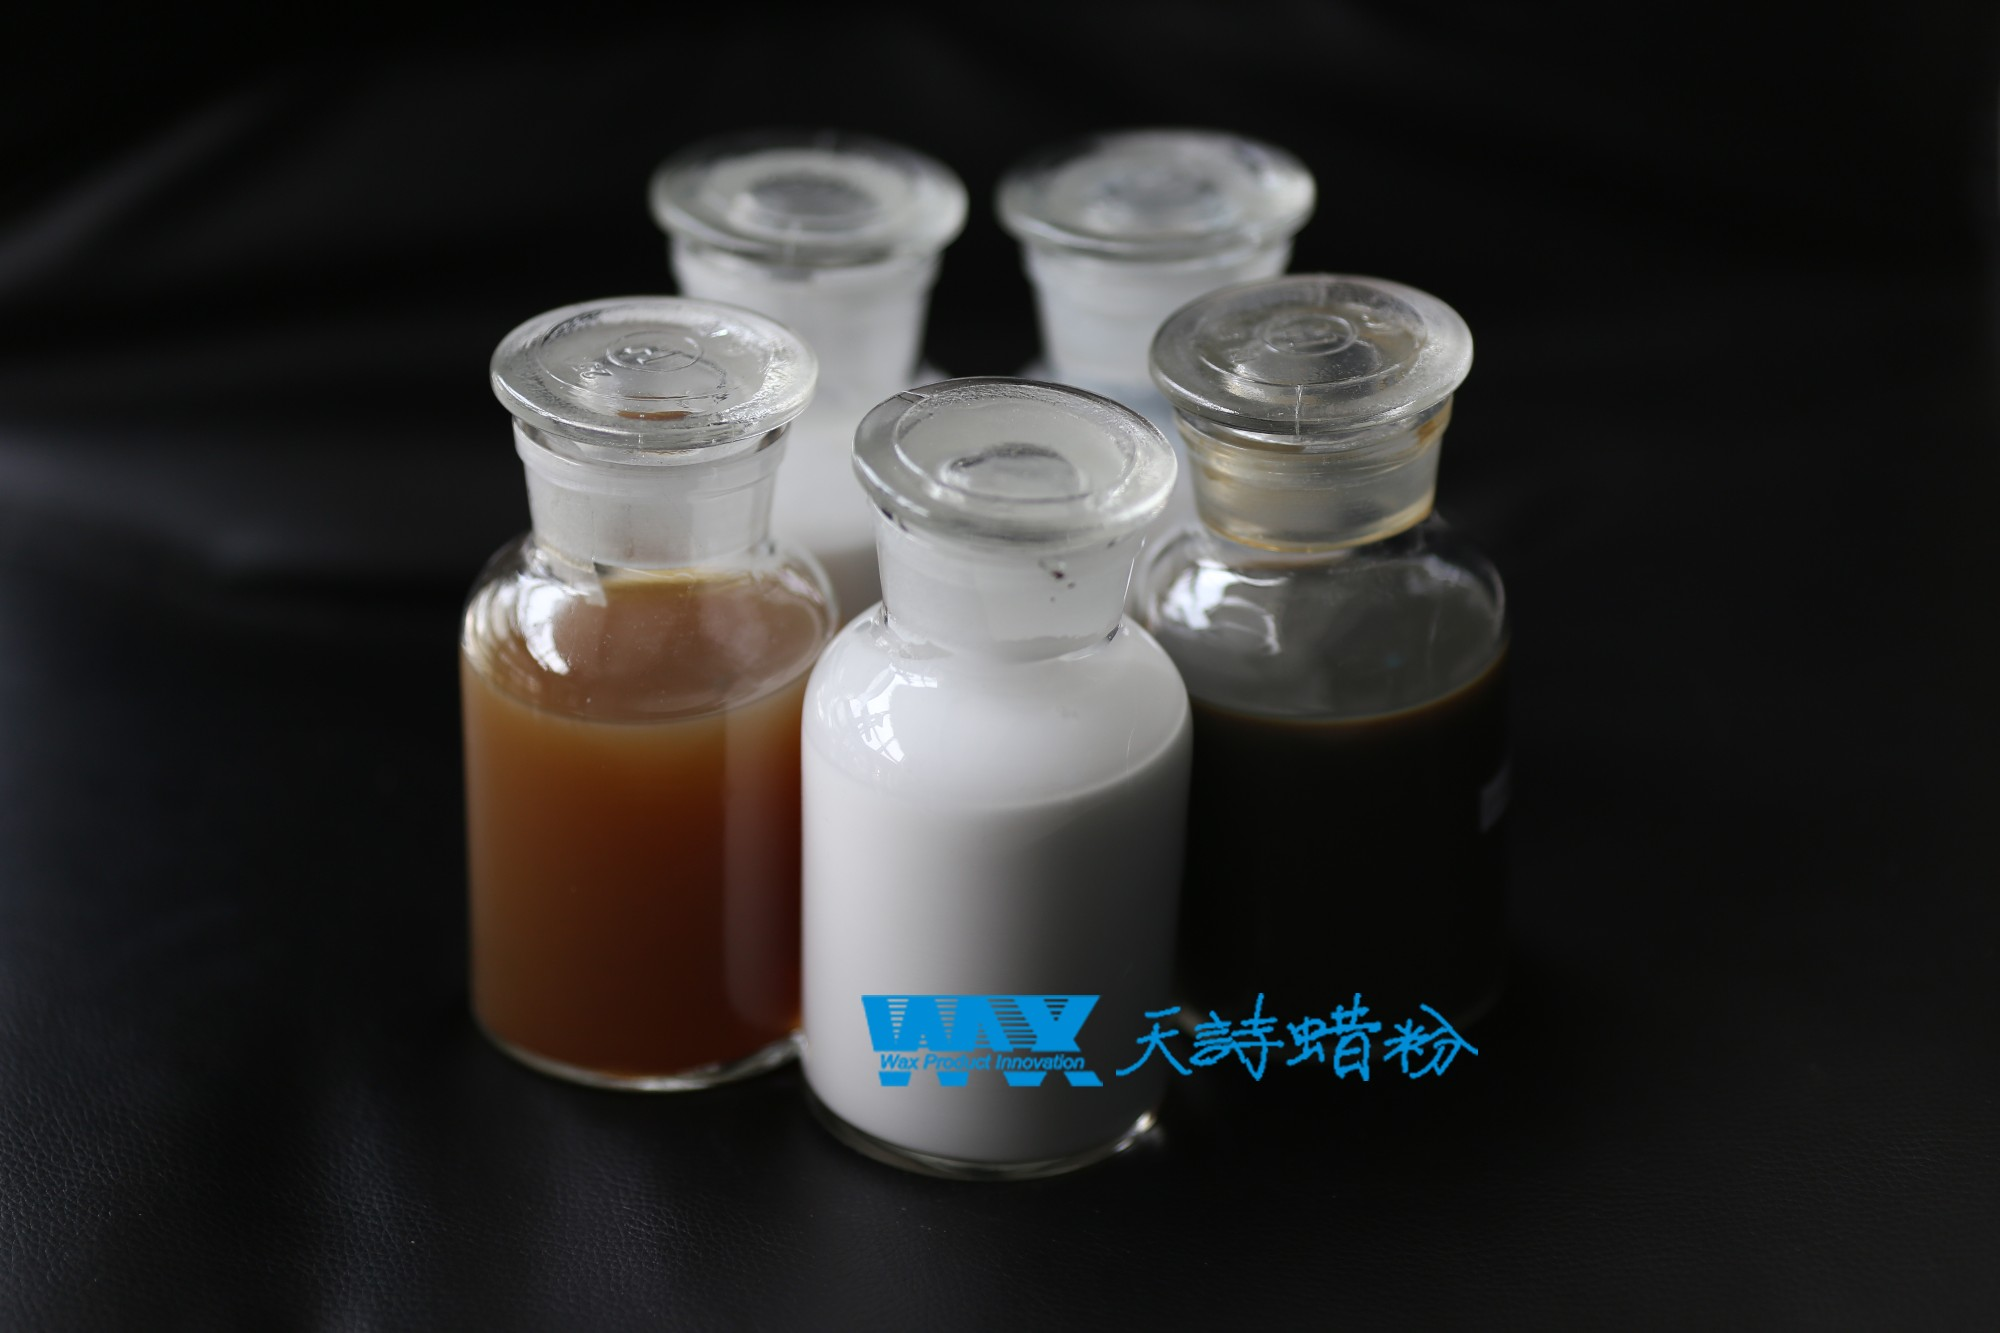 Wax Emulsion/Aqueous Wax Additives